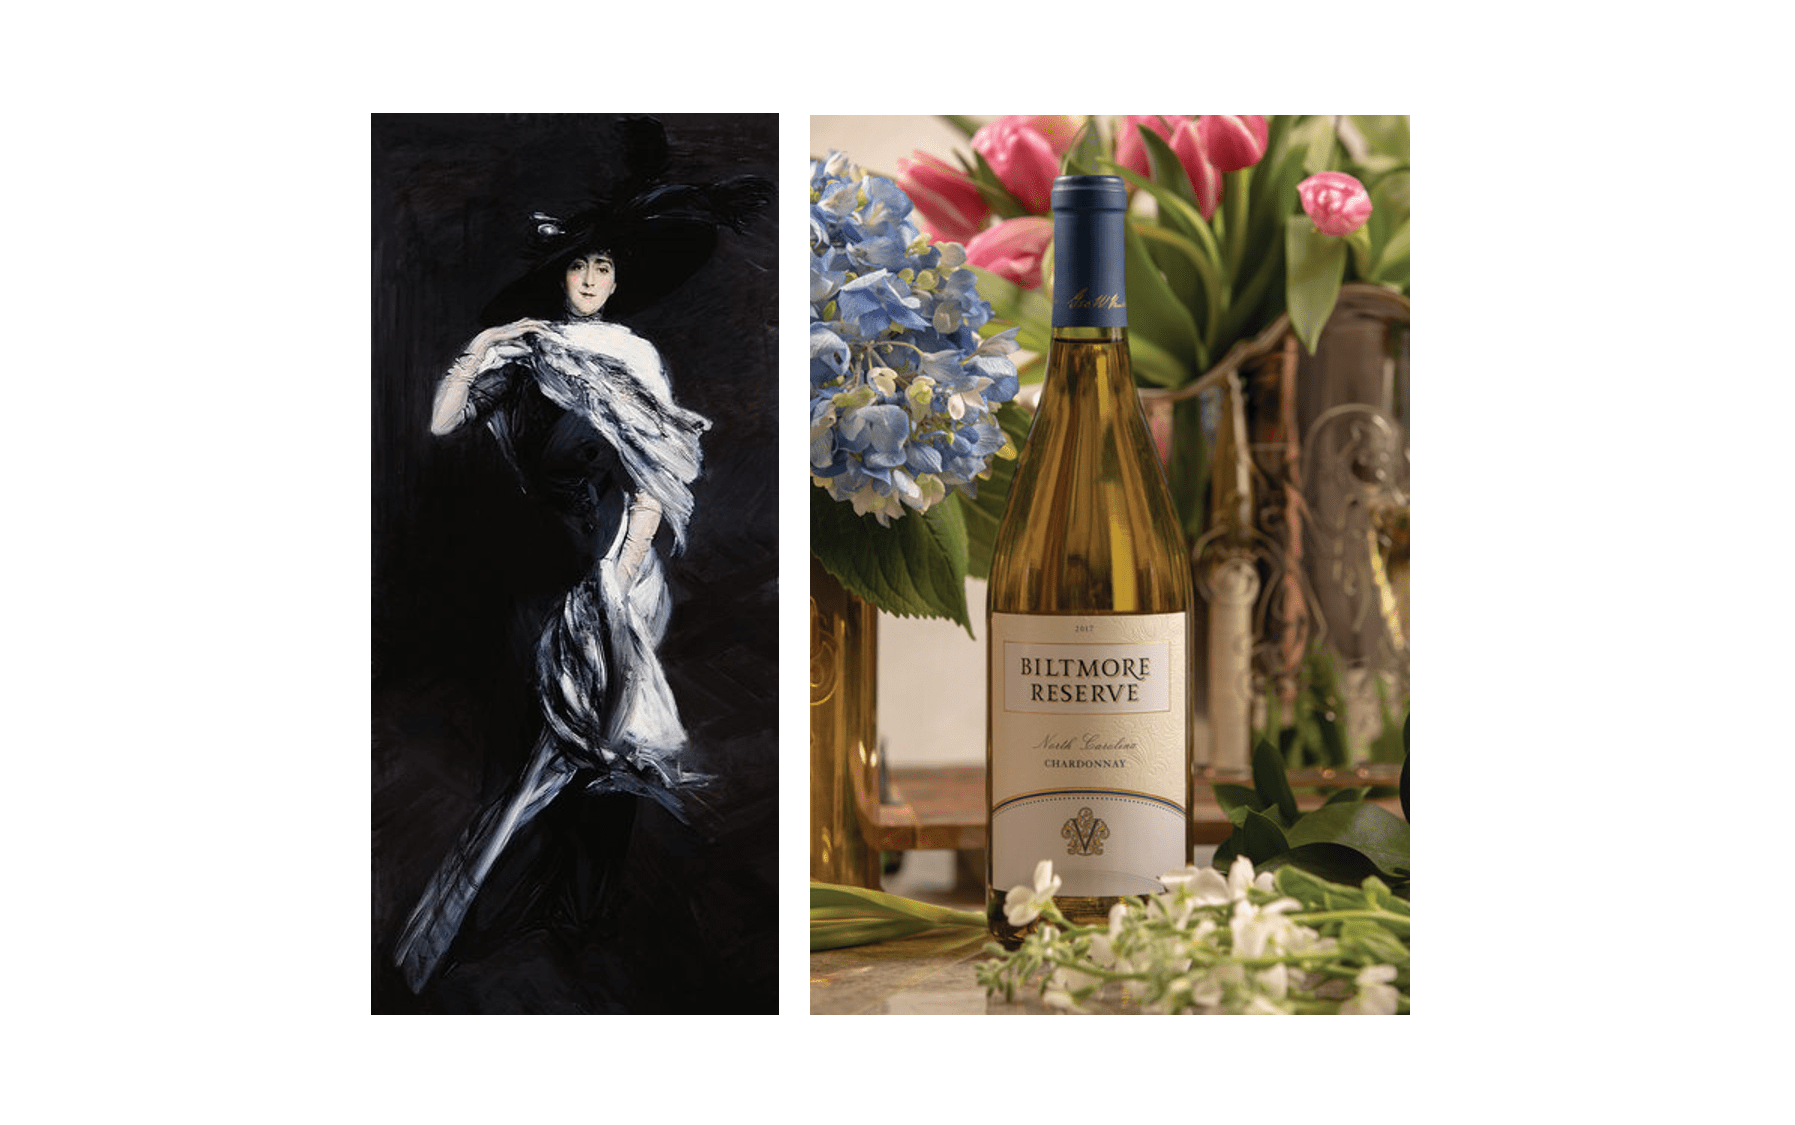 Edith Vanderbilt paired with Biltmore Reserve Chardonnay